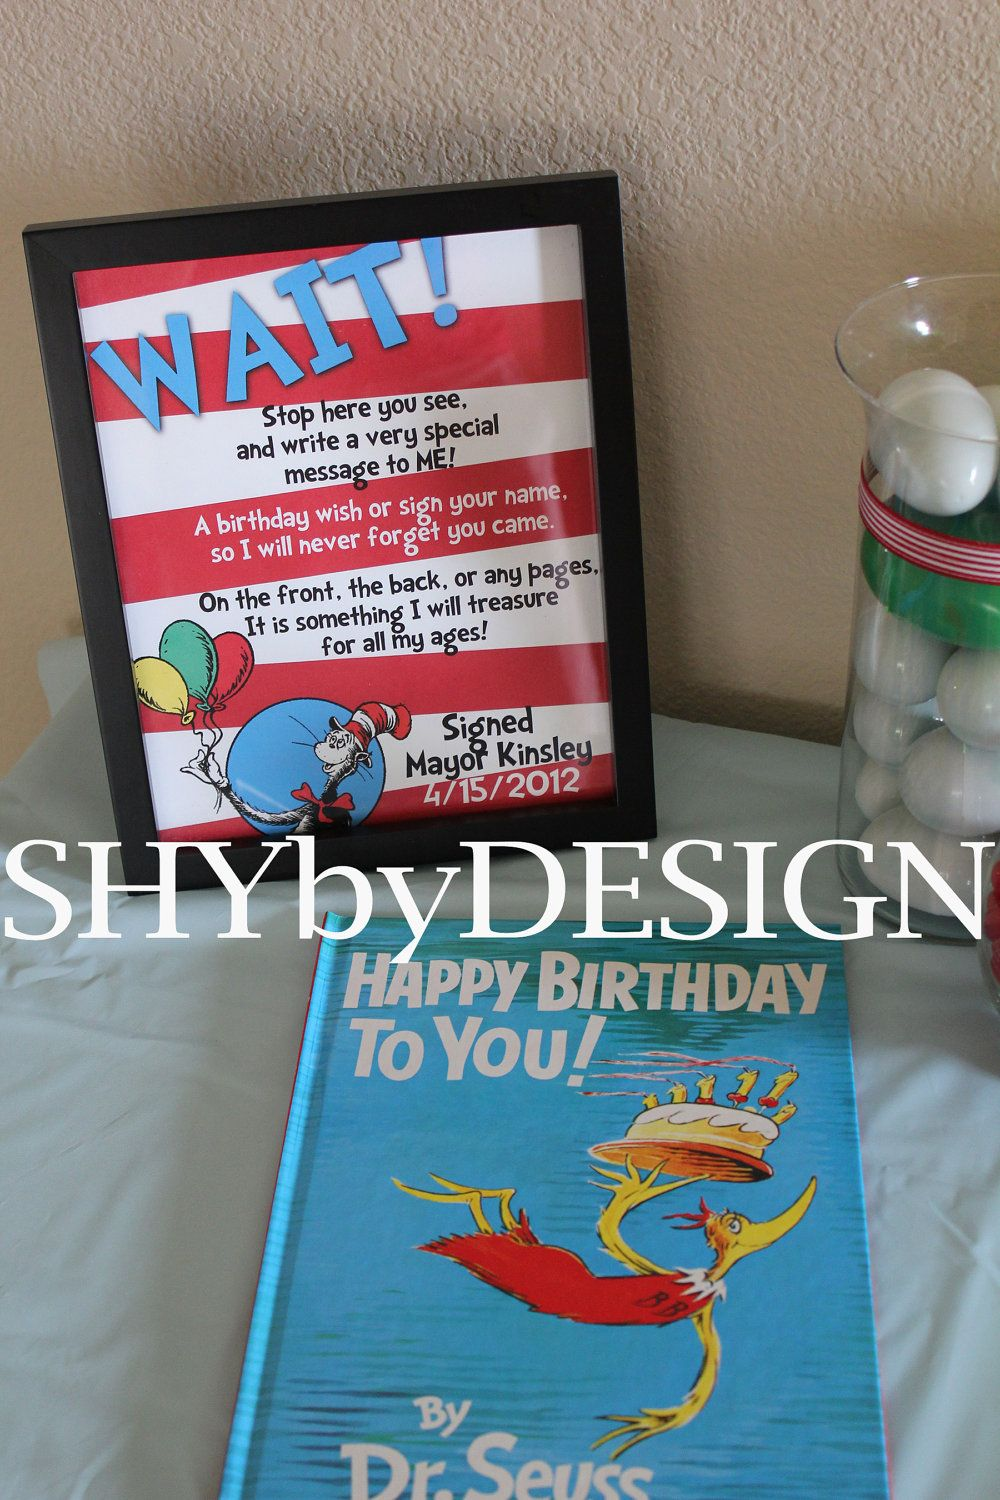 graphic about Dr Seuss Happy Birthday to You Printable called Customized PRINTABLE Dr. Seuss Birthday Ebook Signal Thank